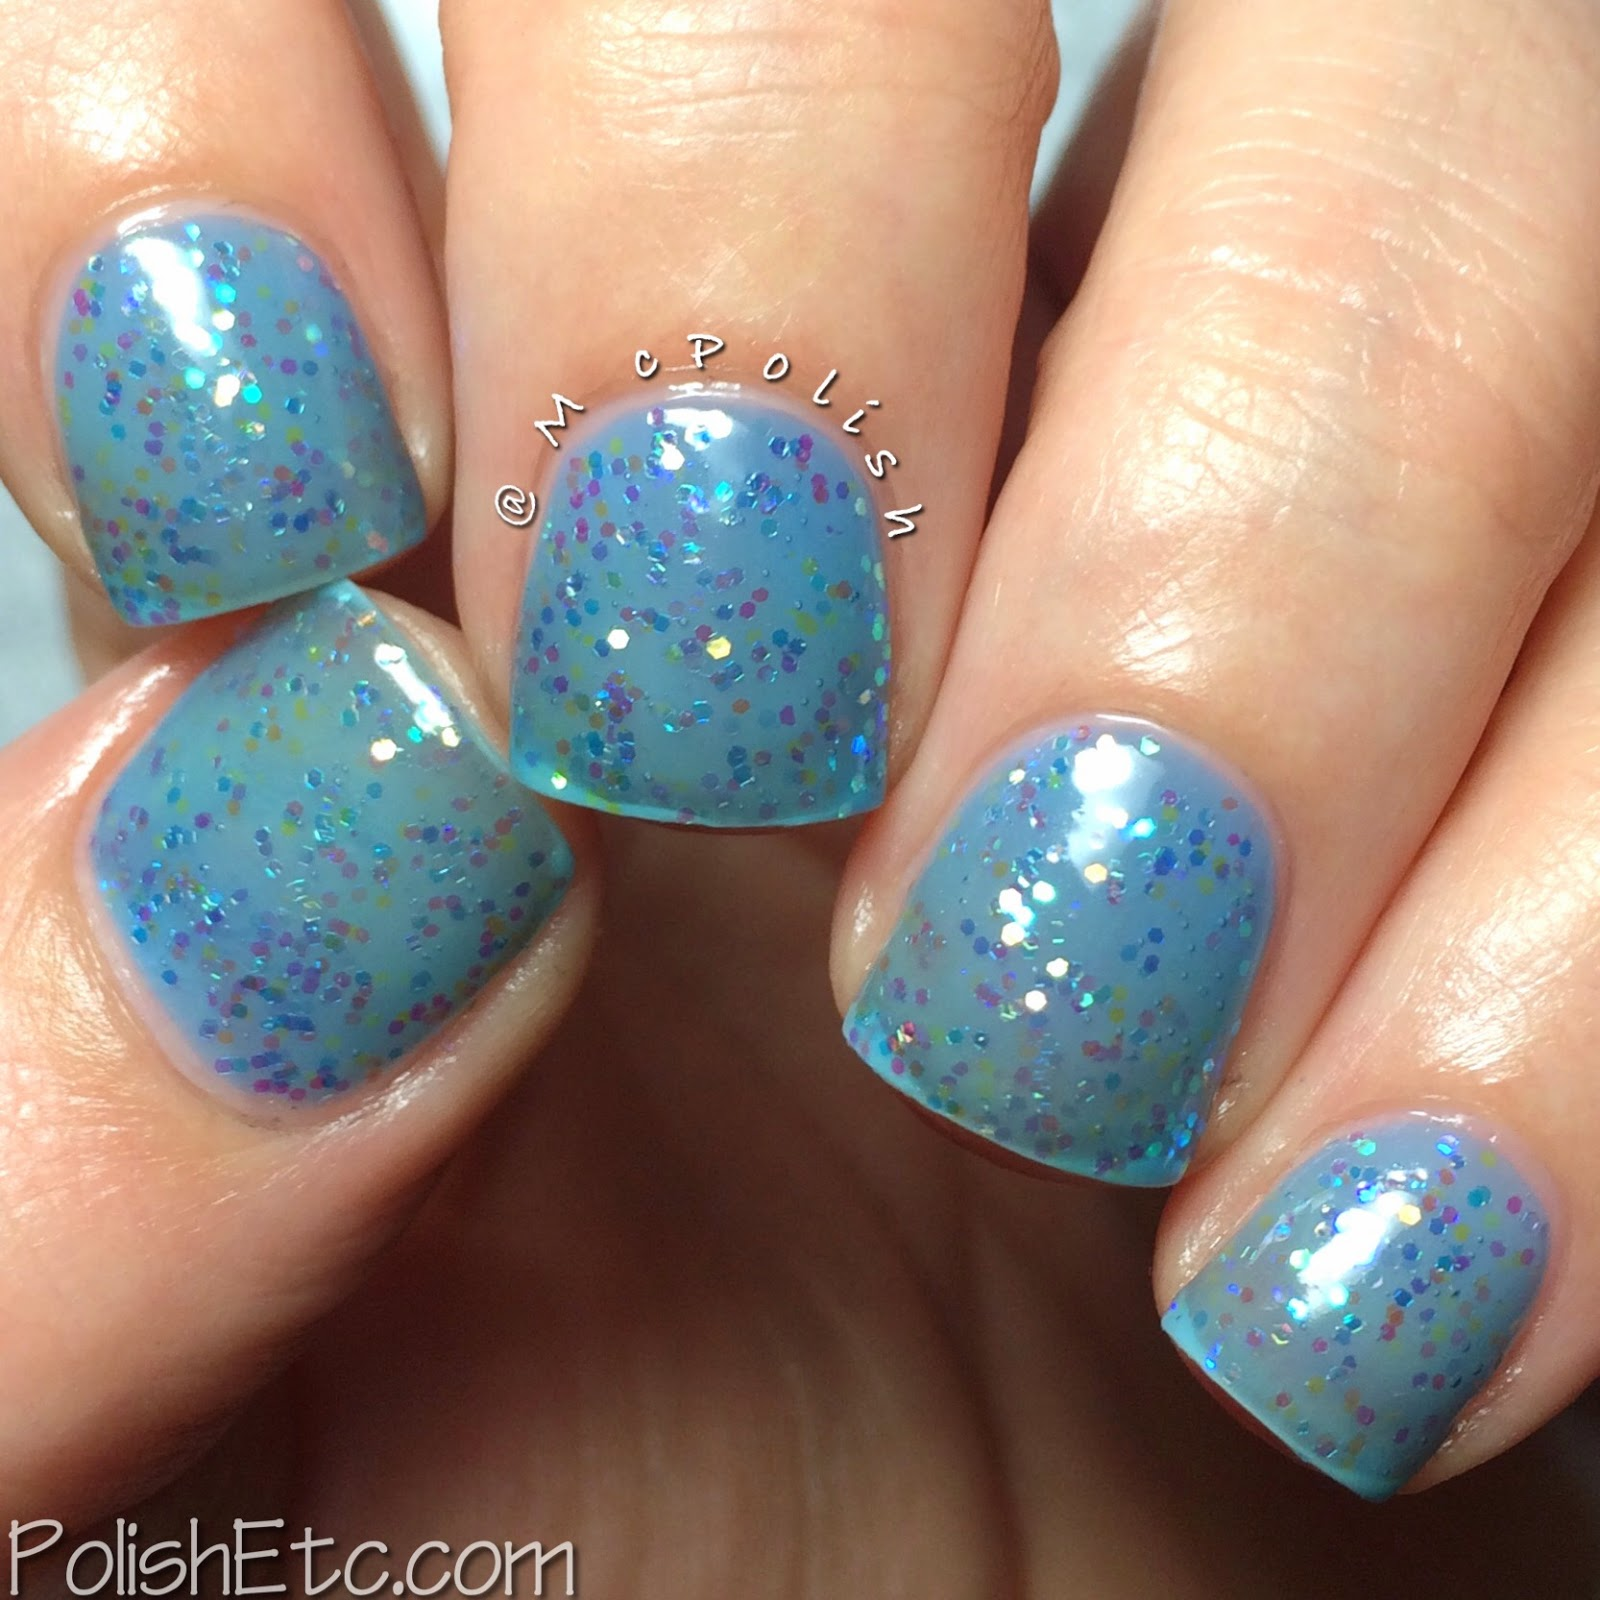 Pure Ice - New Year New Hue Jellies - Blue Hue - McPolish